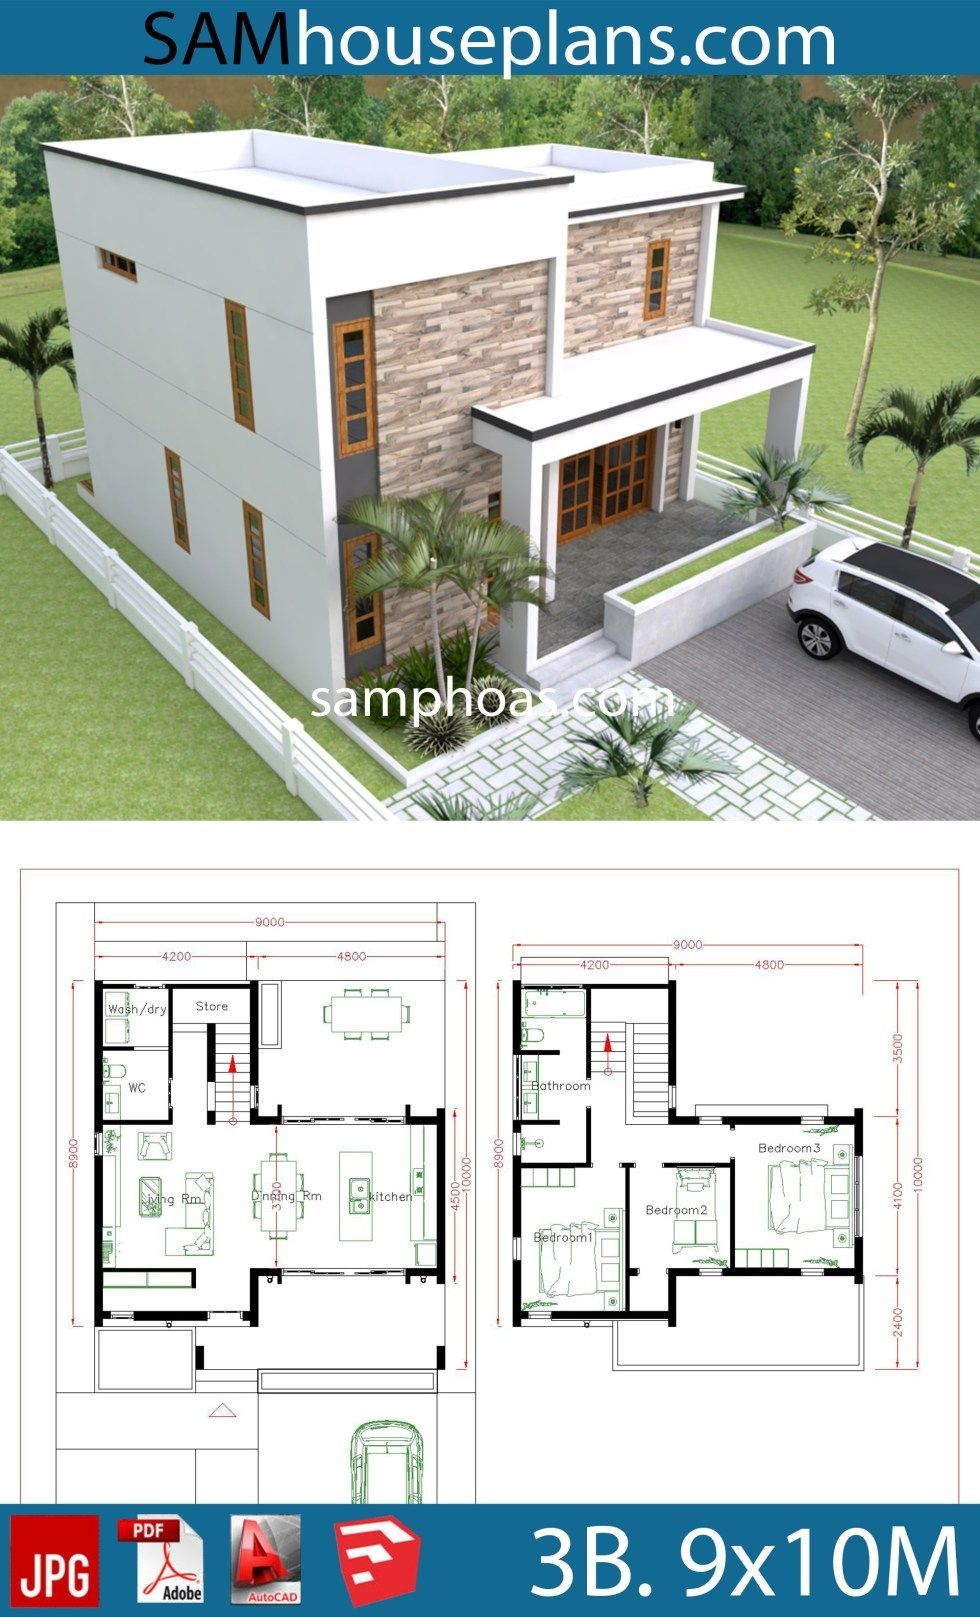 Duplex House Plans in 2020 Bedroom house plans, Small